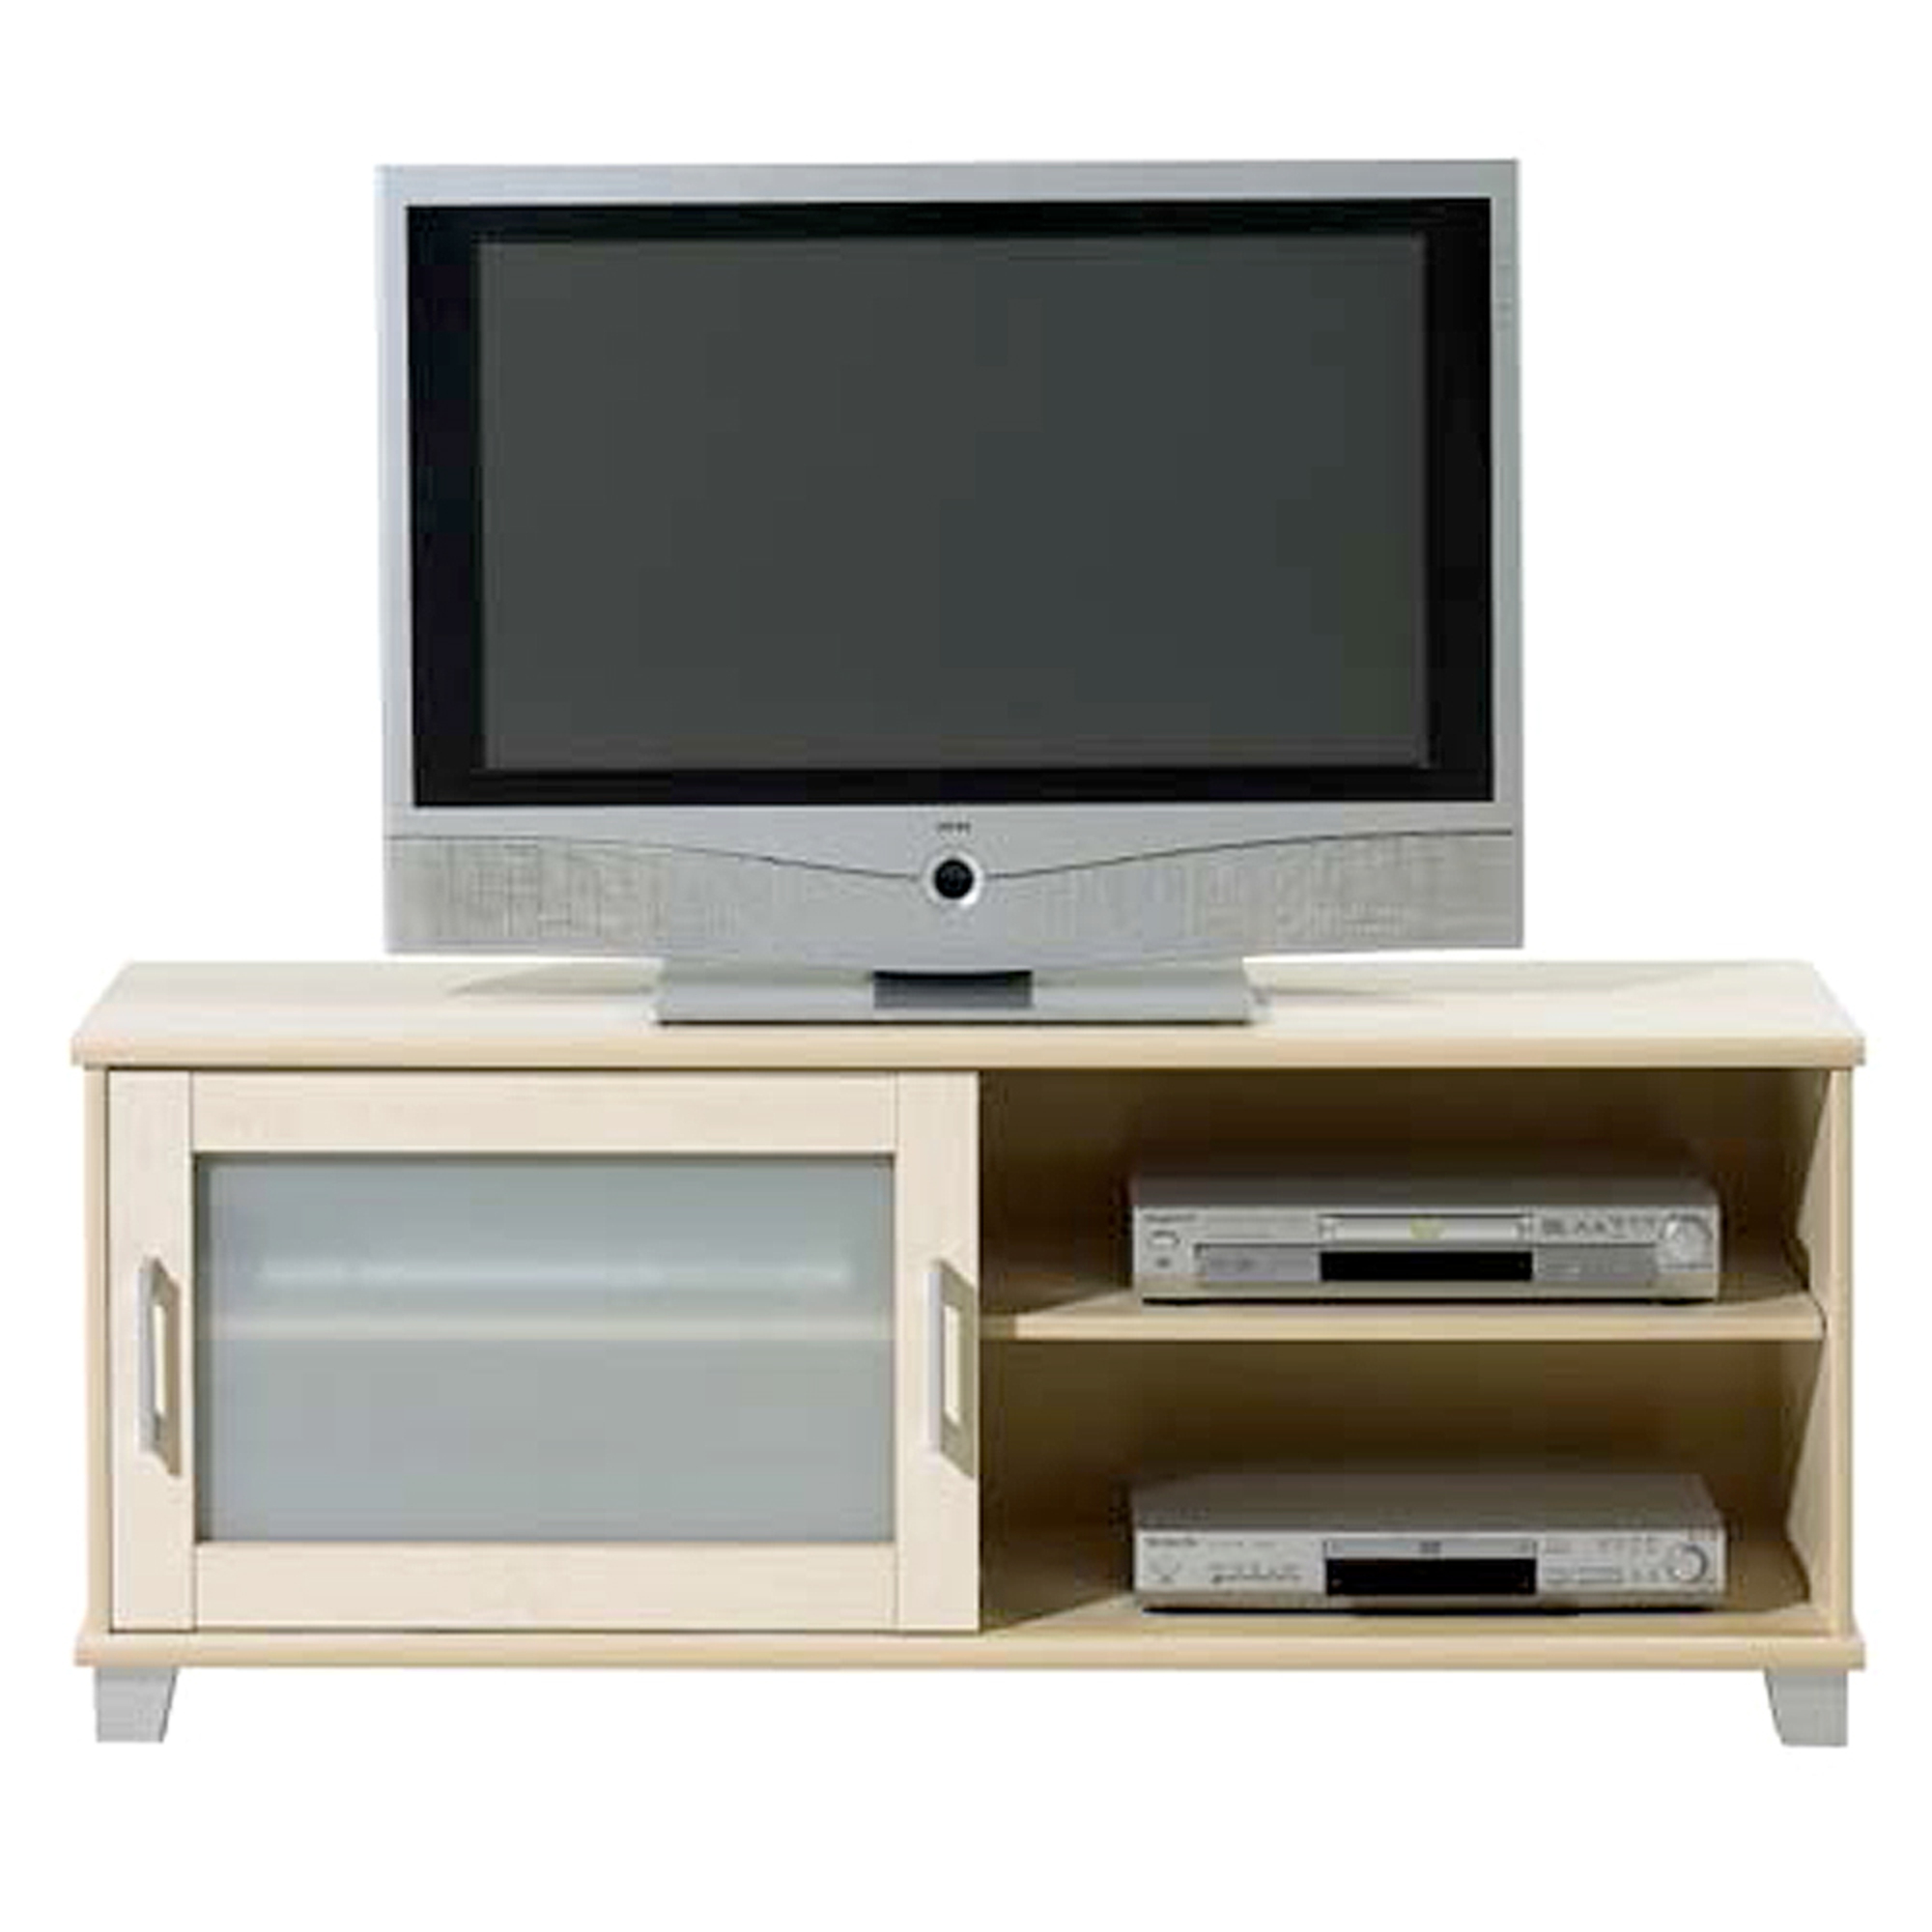 meuble tv en solde meuble tv 2 portes 2 niches en bois laqu blanc pieds soldes meuble tv. Black Bedroom Furniture Sets. Home Design Ideas